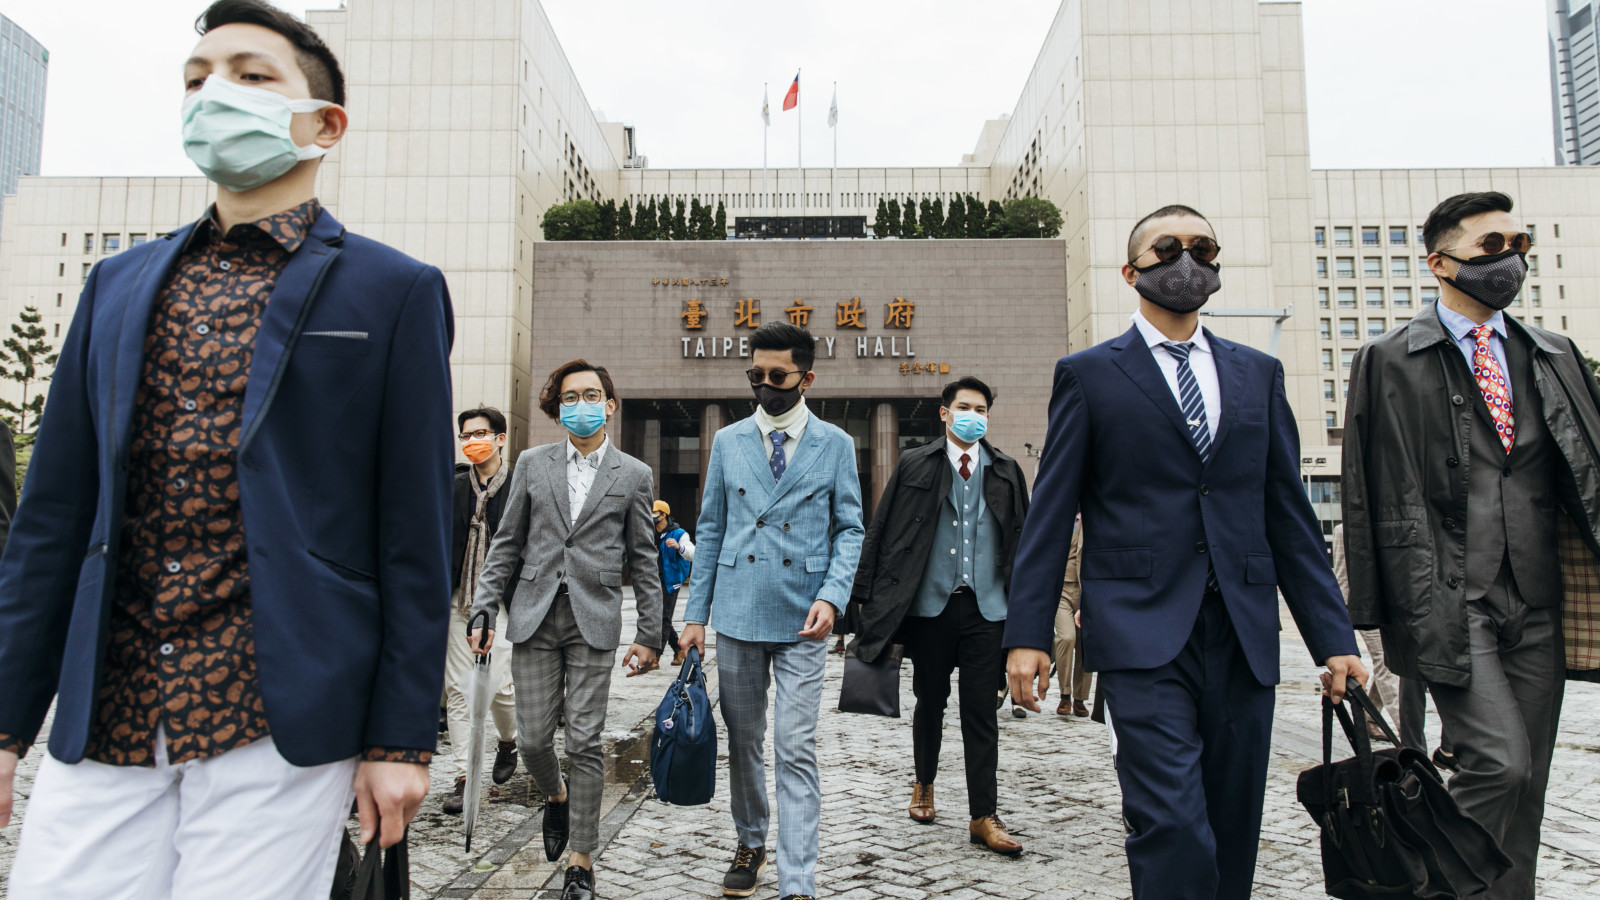 City hall 2 - giles.heasman(何家樂) - Taiwan - GQ Suit Walk